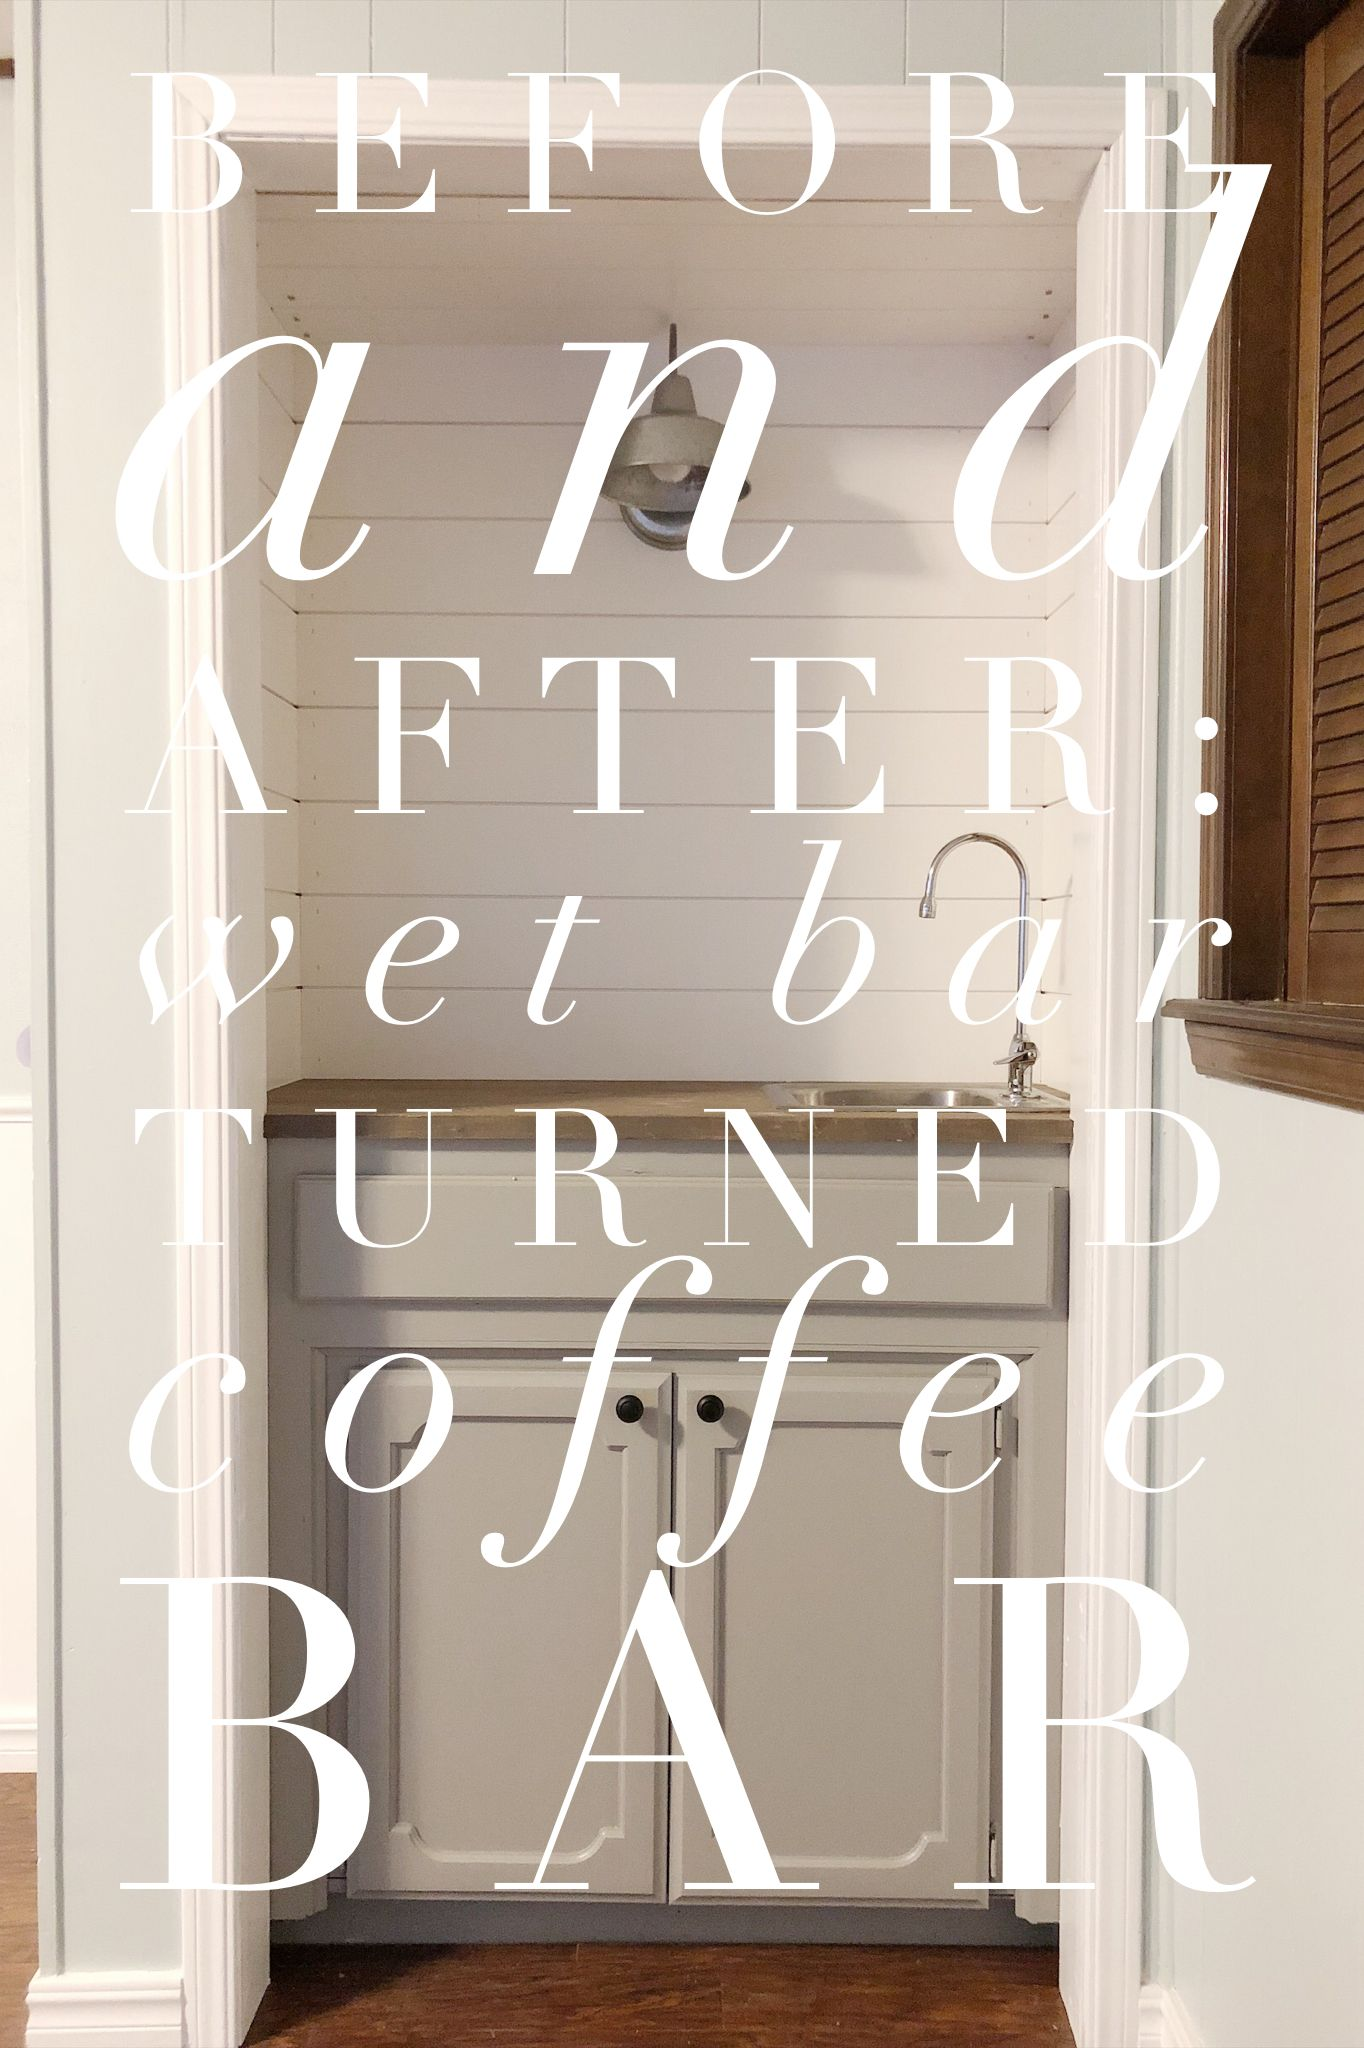 Wet Bar Turned Coffee Makeover Homedecor Diyprojects